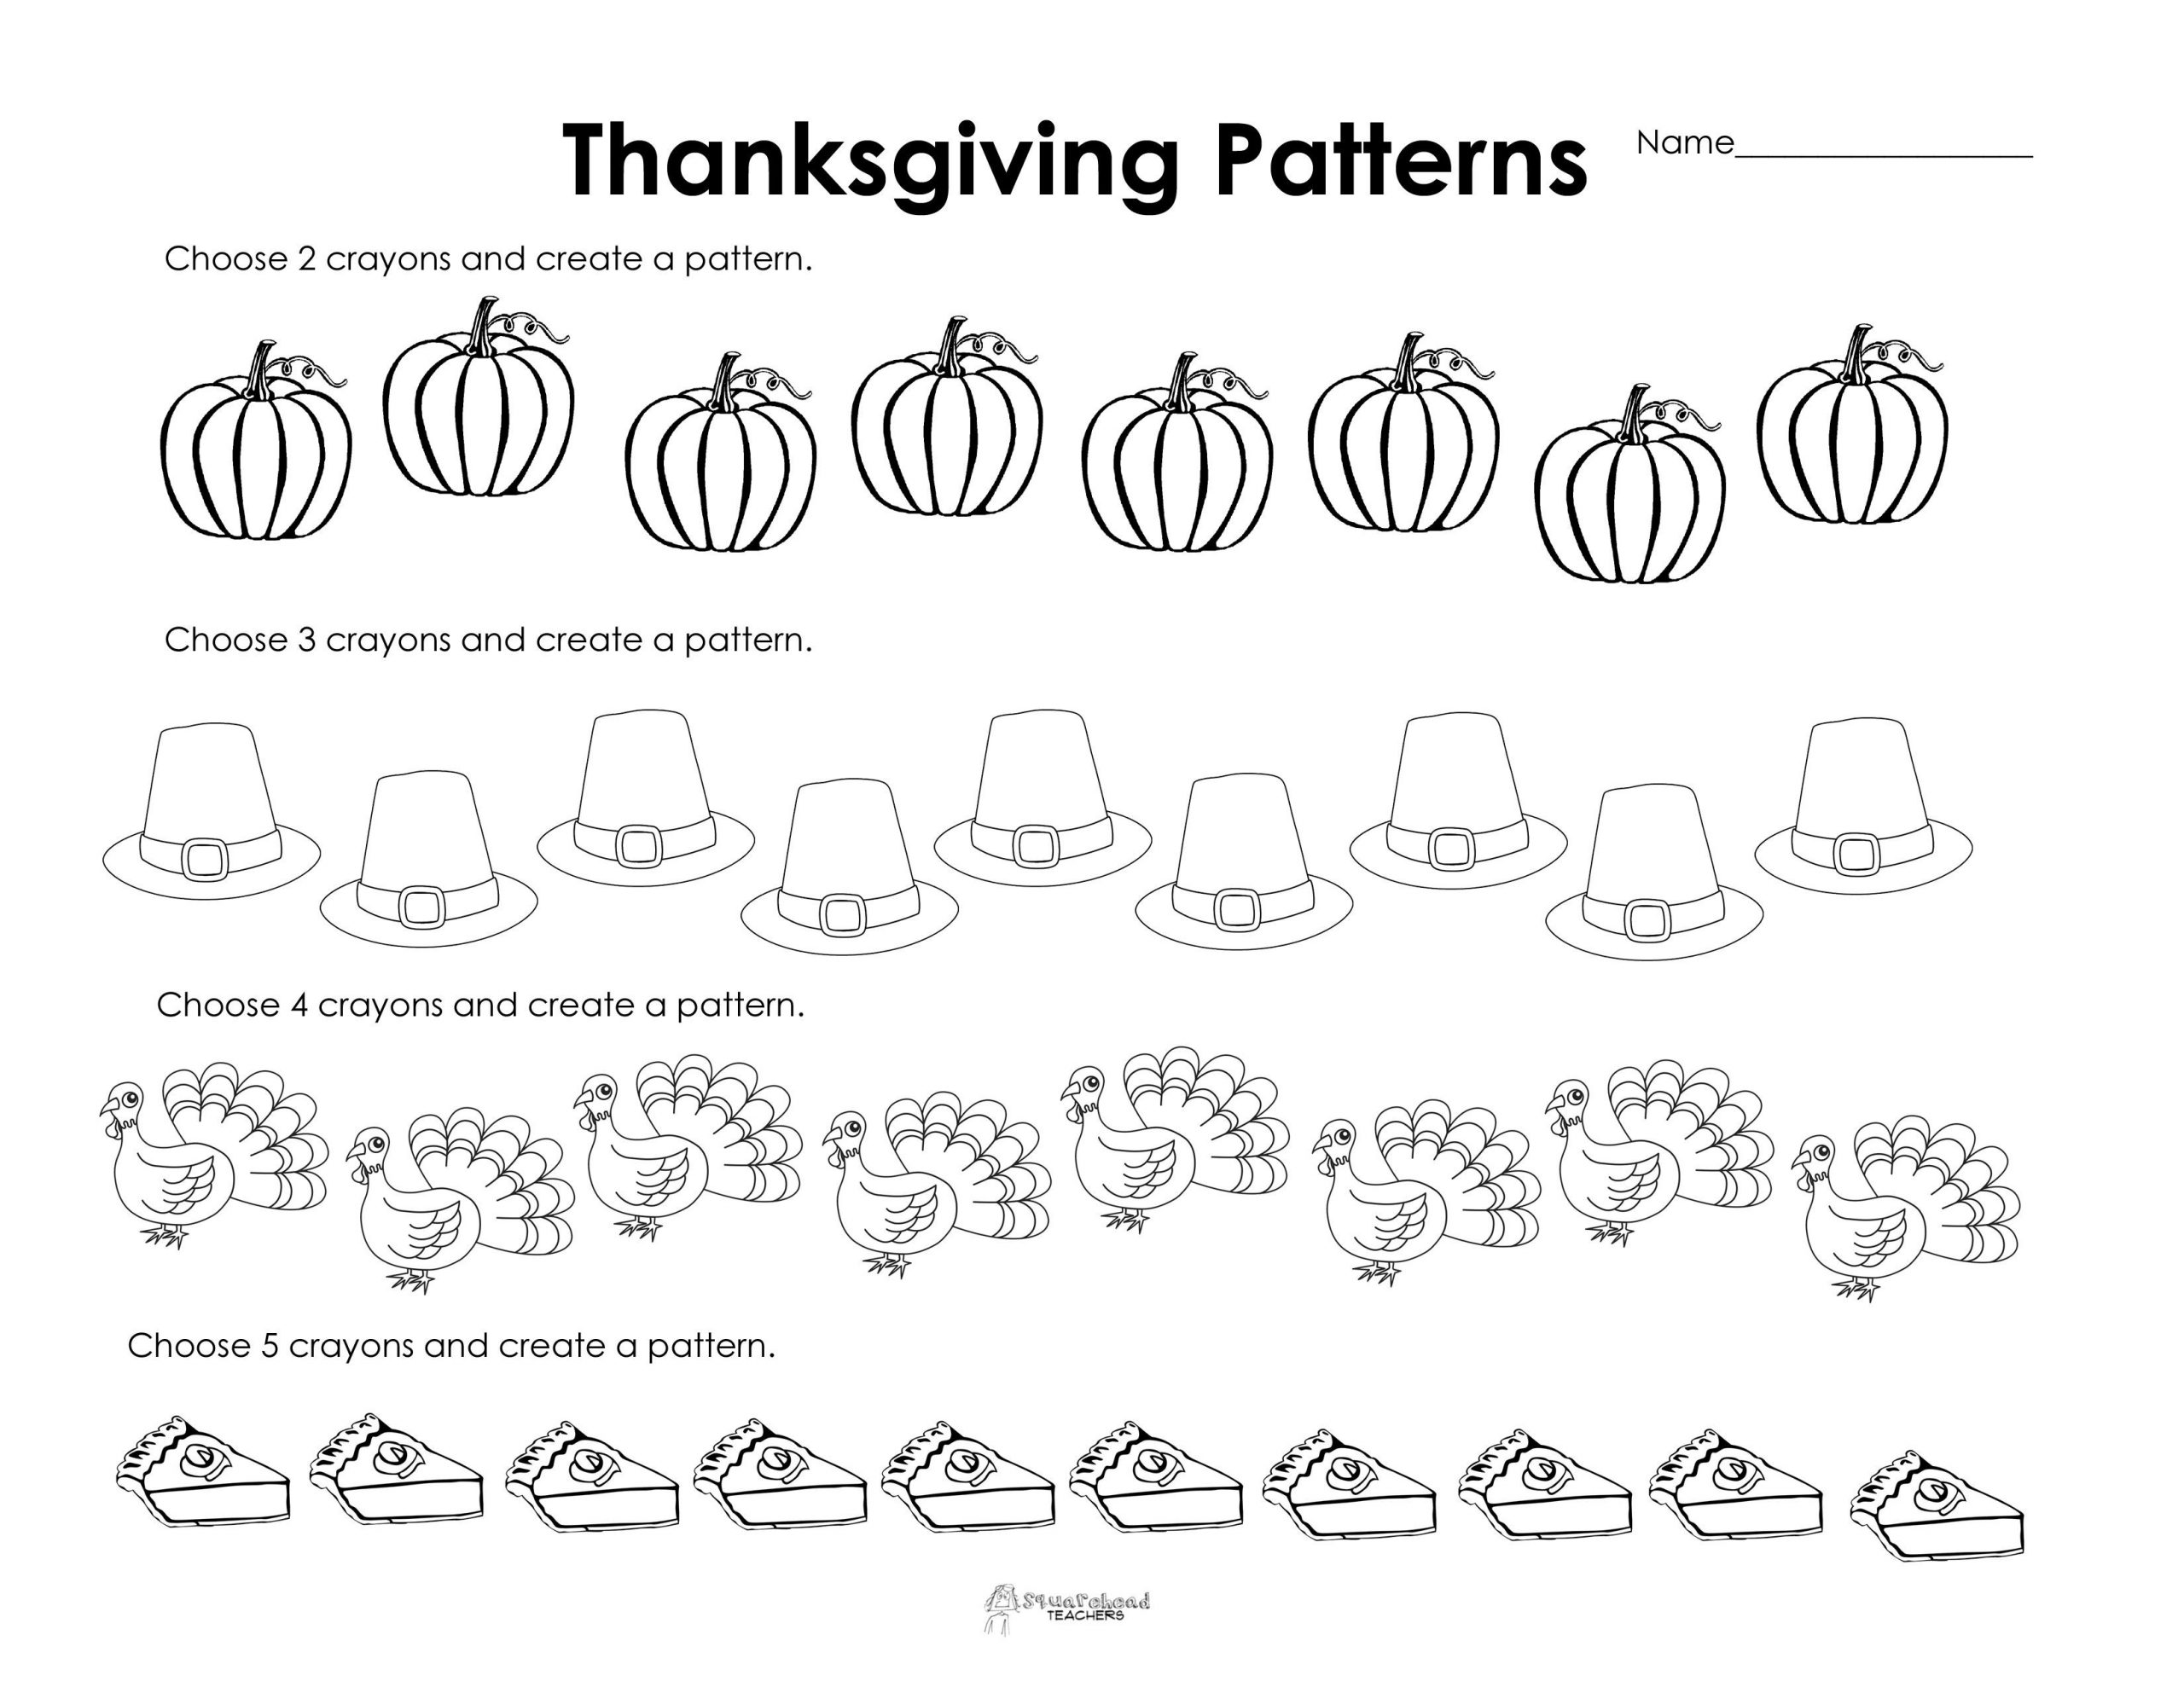 1st Grade Thanksgiving Worksheets Making Patterns Thanksgiving Style Free Worksheet